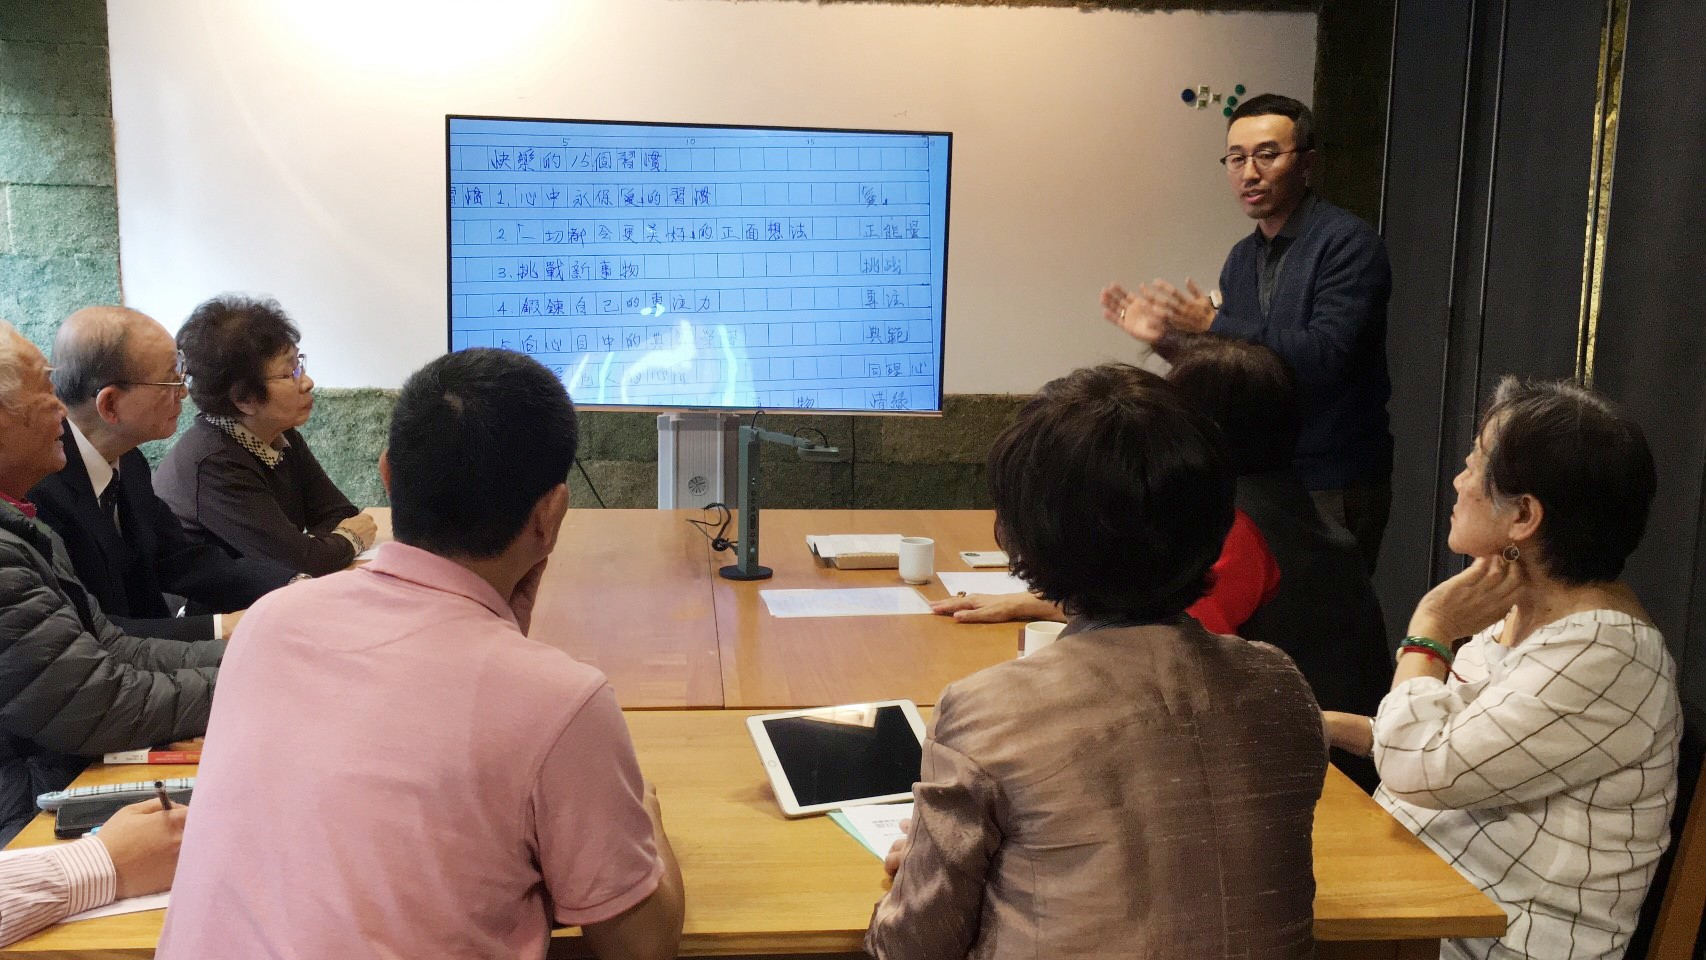 A routine session kick-starts with the introduction of VZ-R document camera